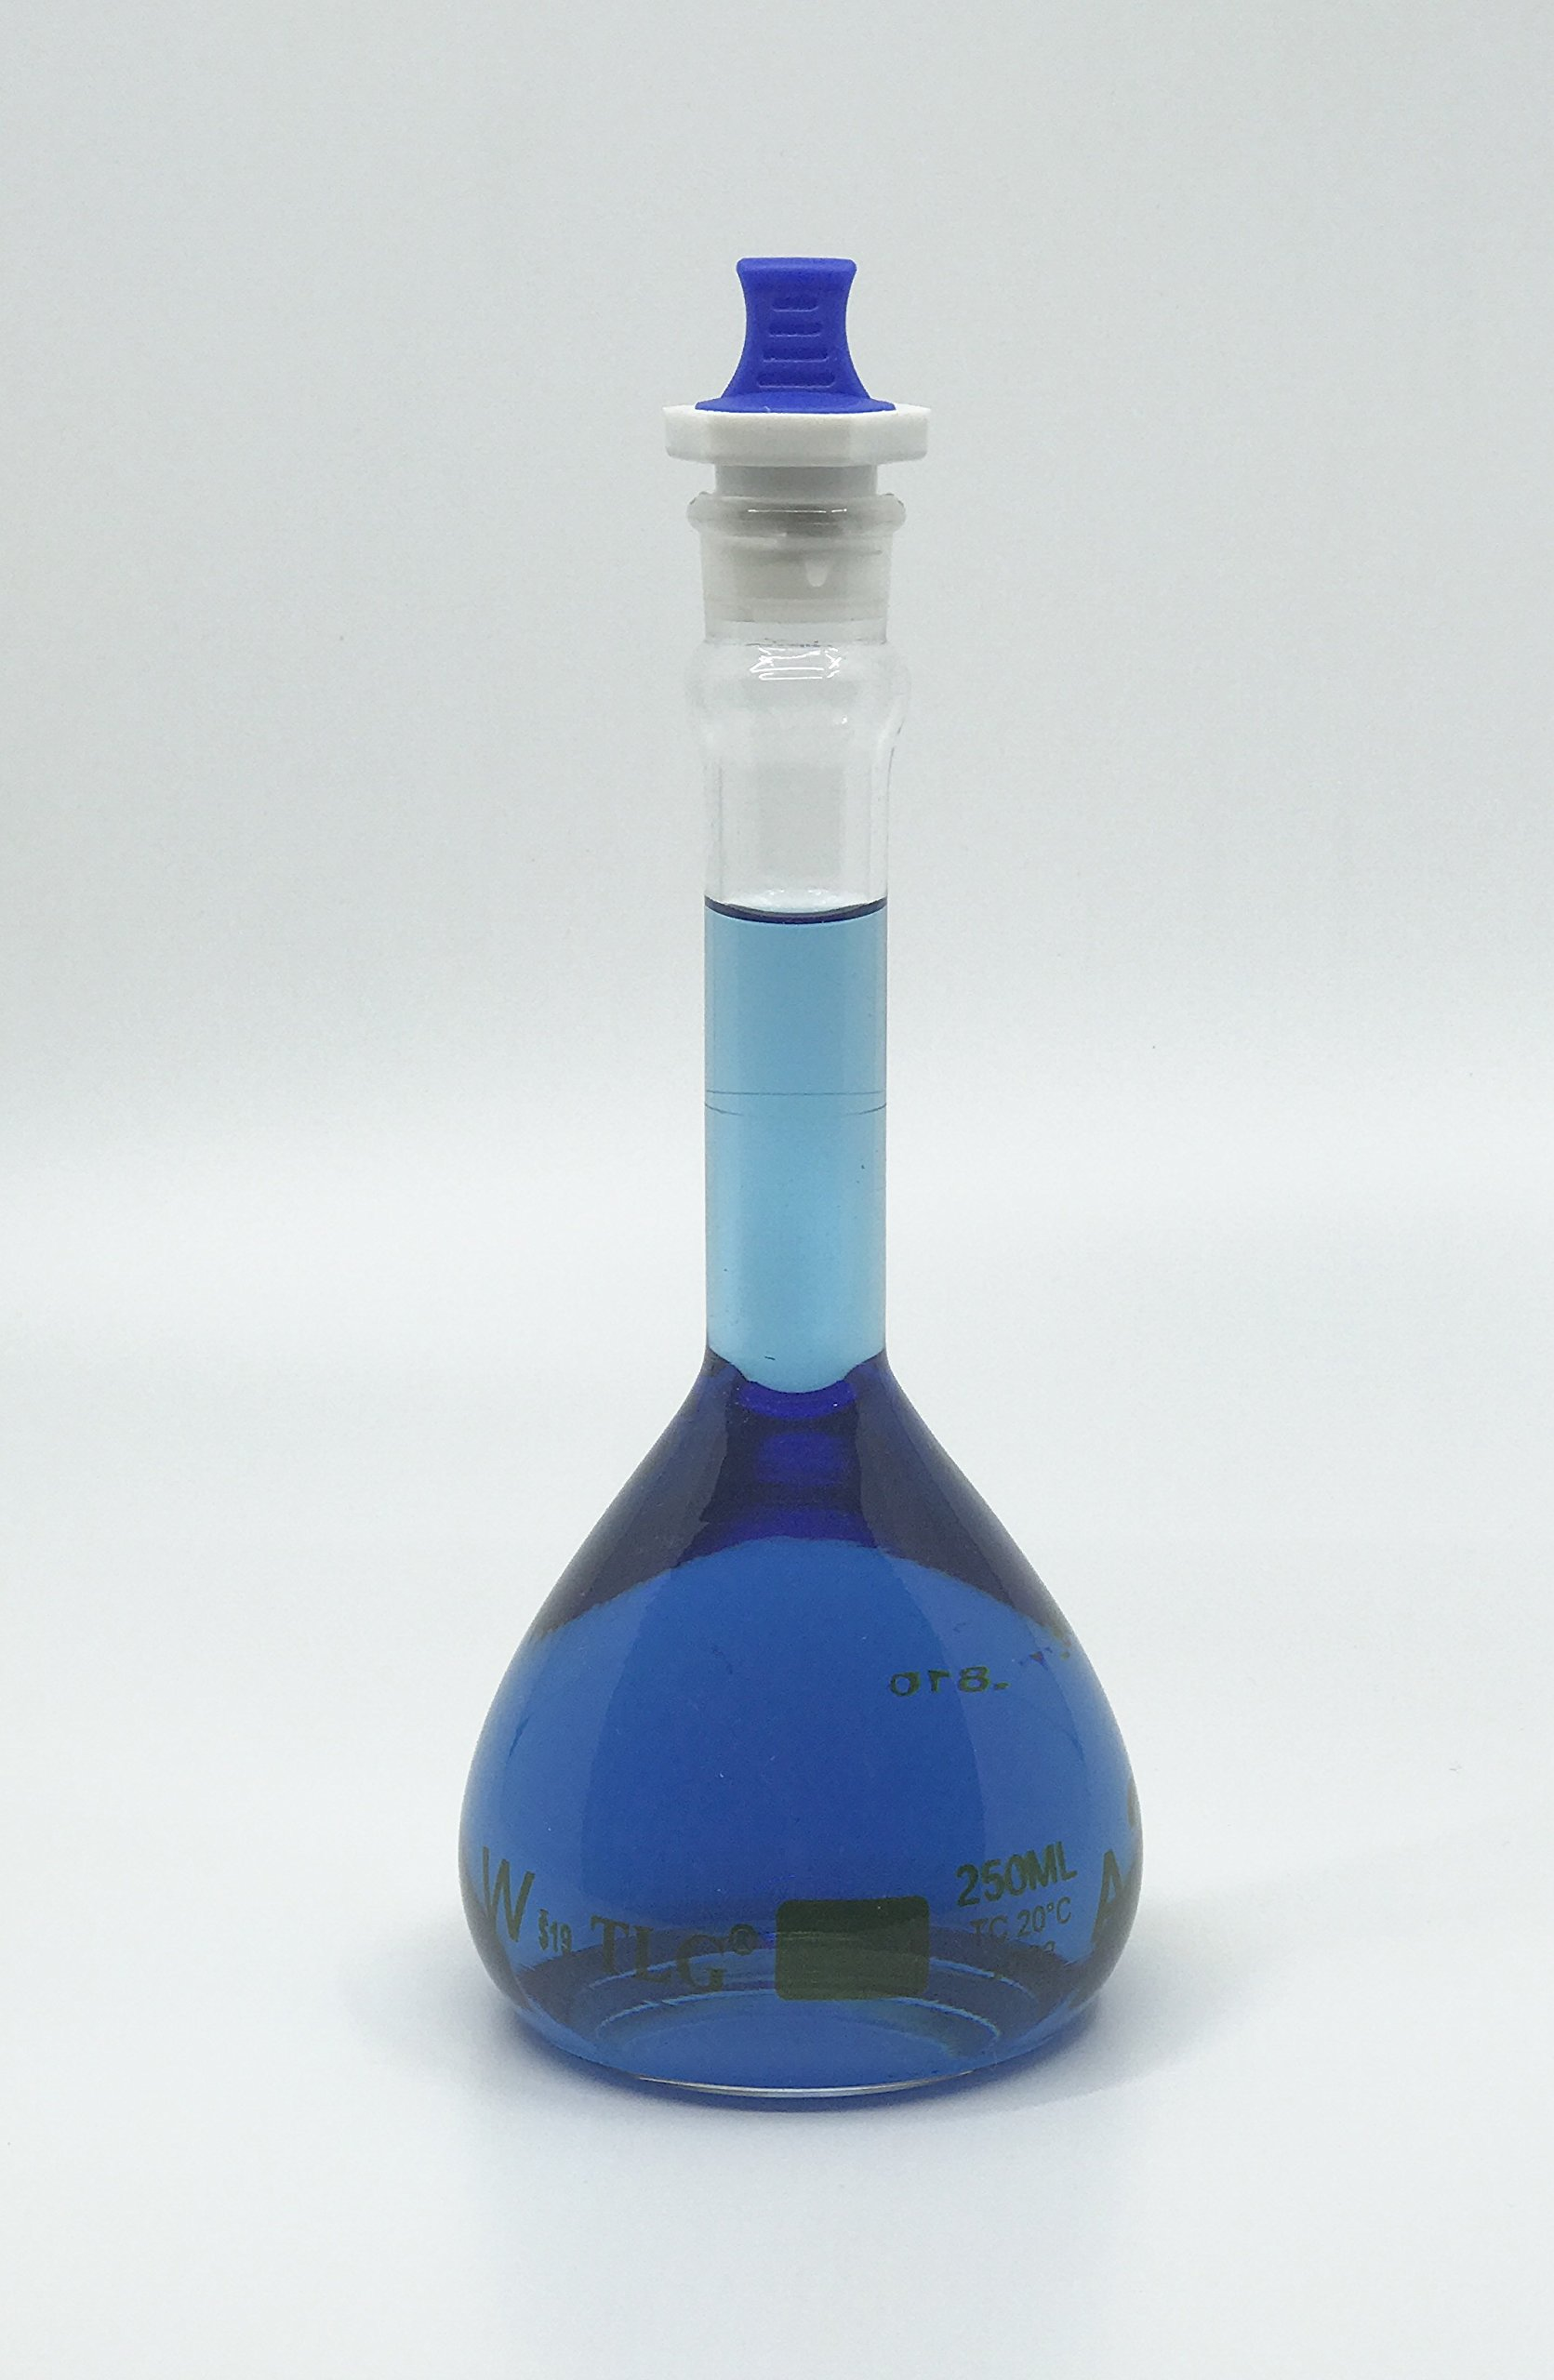 CHEM SCIENCE INC 129.503.07 Volumetric Flask, Serialized and Certified with One Graduation Mark Class A, Wide Mouth, Capacity 250 mL with Pp Stopper Size # 19